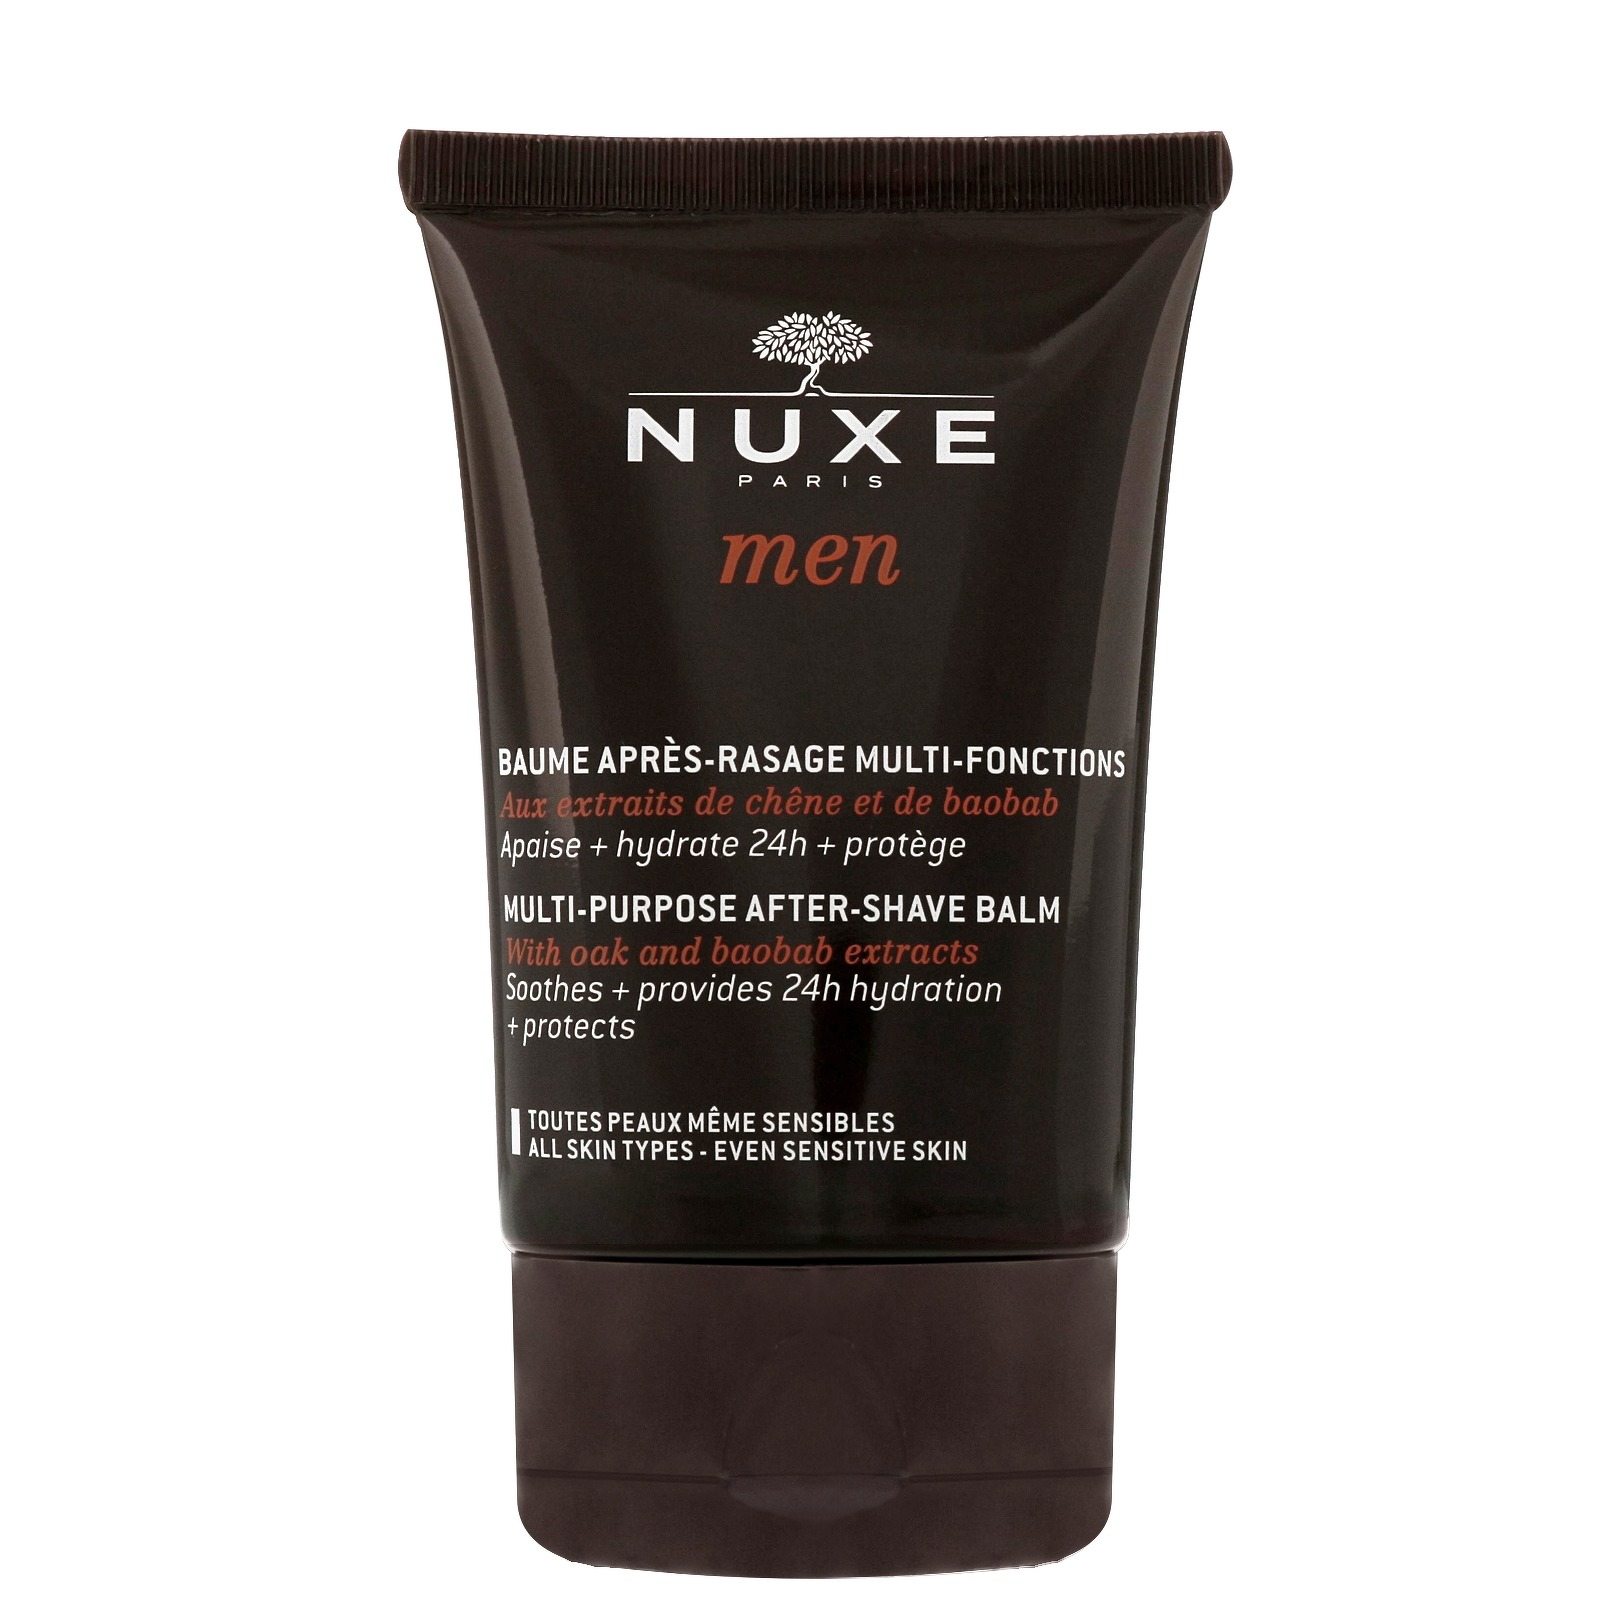 Nuxe Nuxe Men Multi-Function Aftershave Balm 50ml